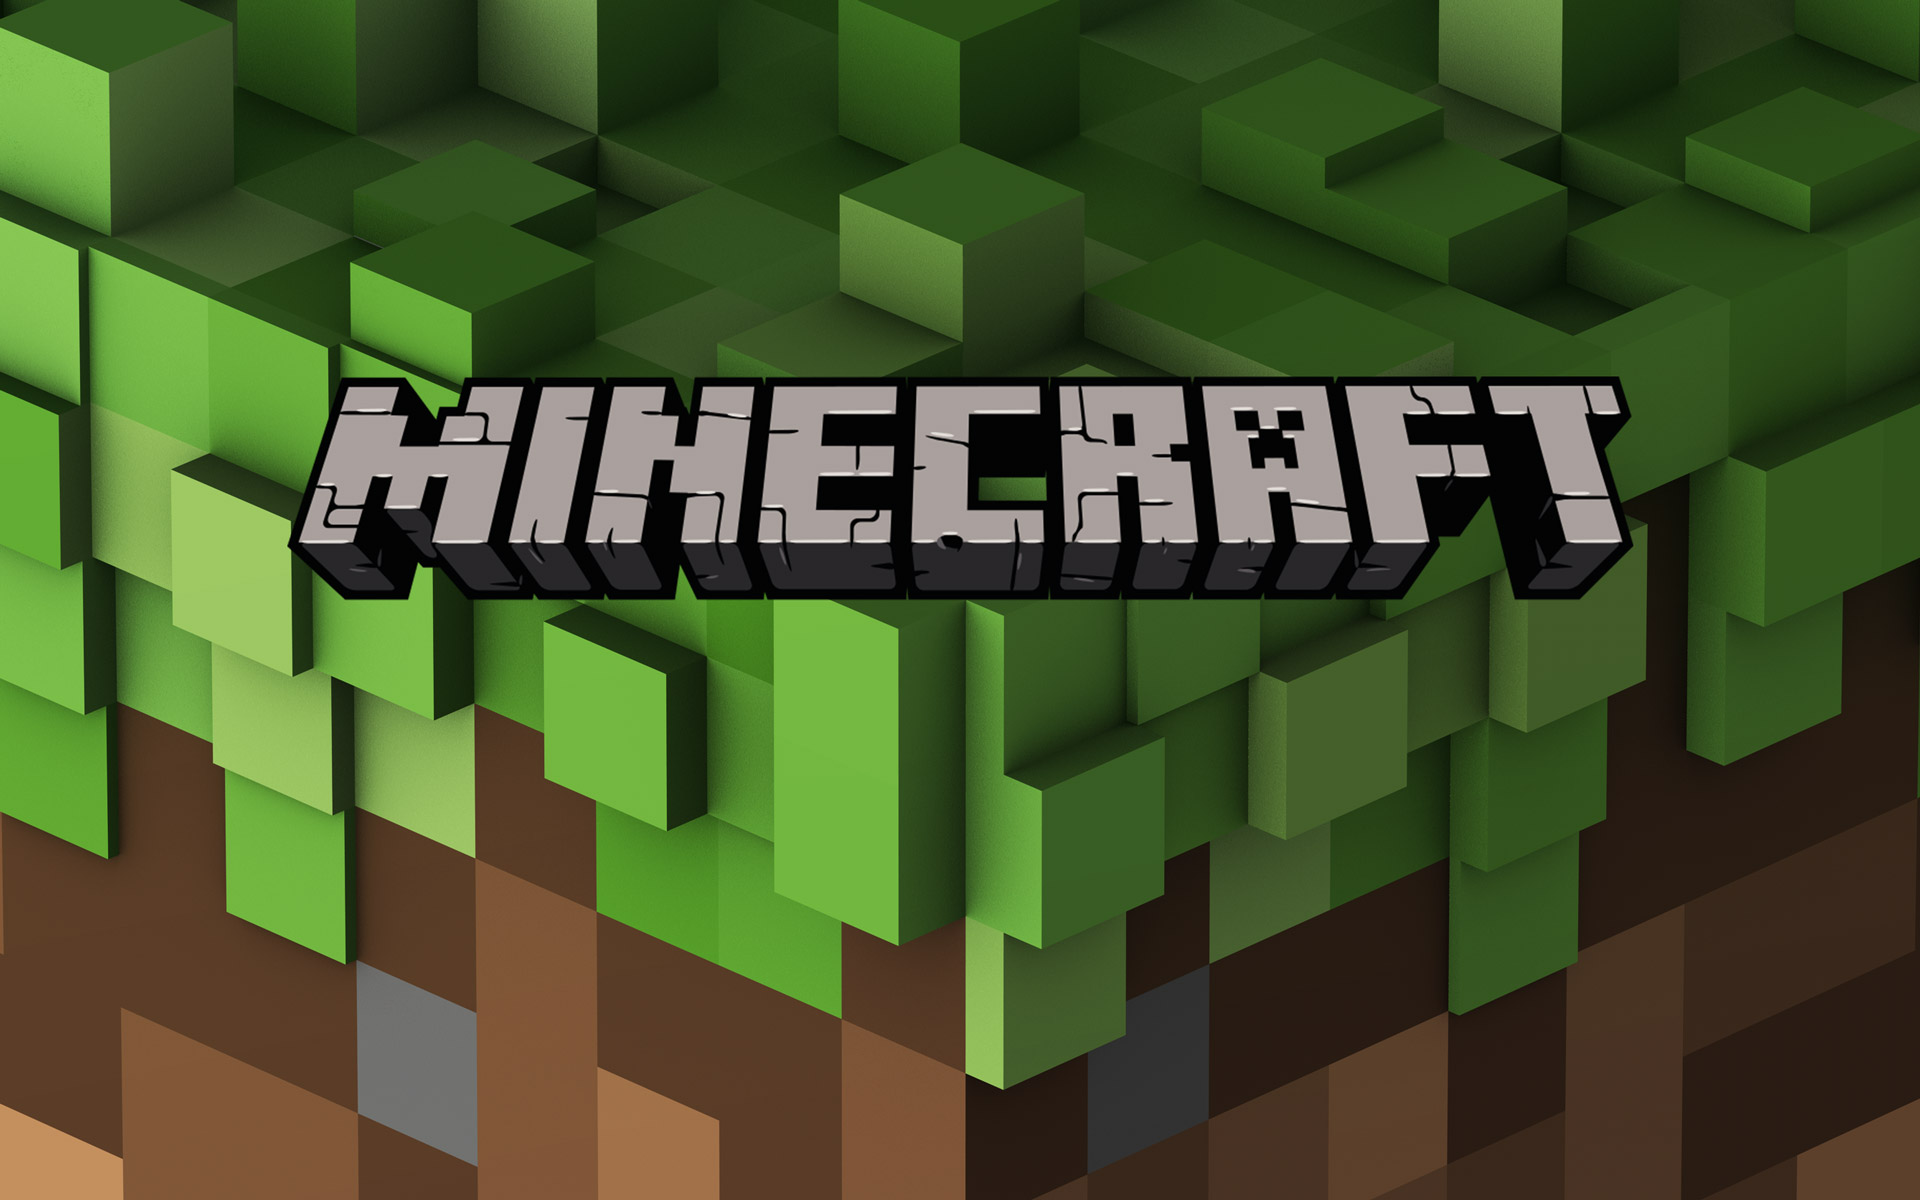 Minecraft Codes – All about Minecraft | MinecraftCode com